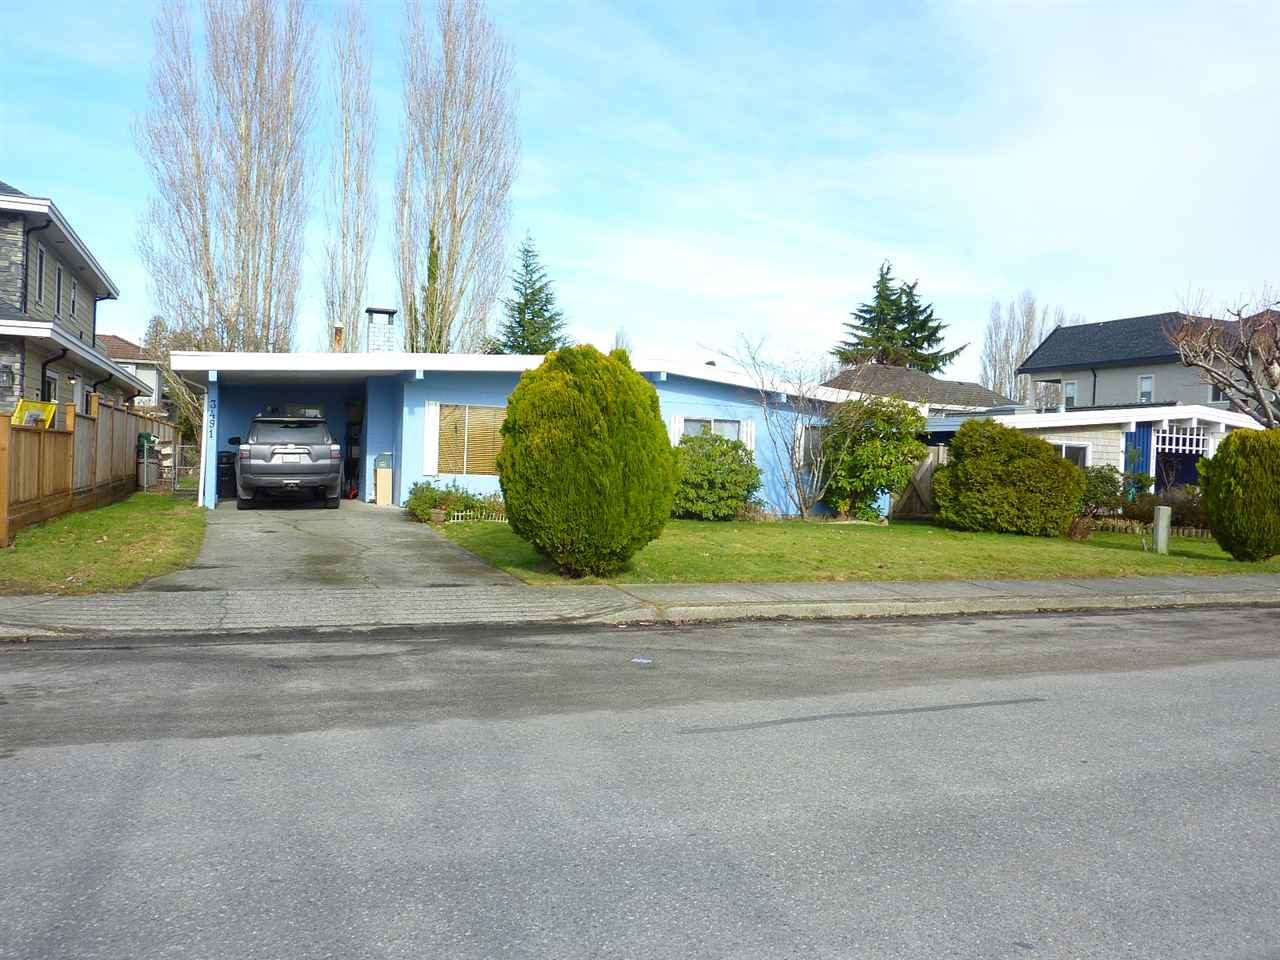 Photo 7: 3491 SPRINGFORD Avenue in Richmond: Steveston North House for sale : MLS® # R2139973